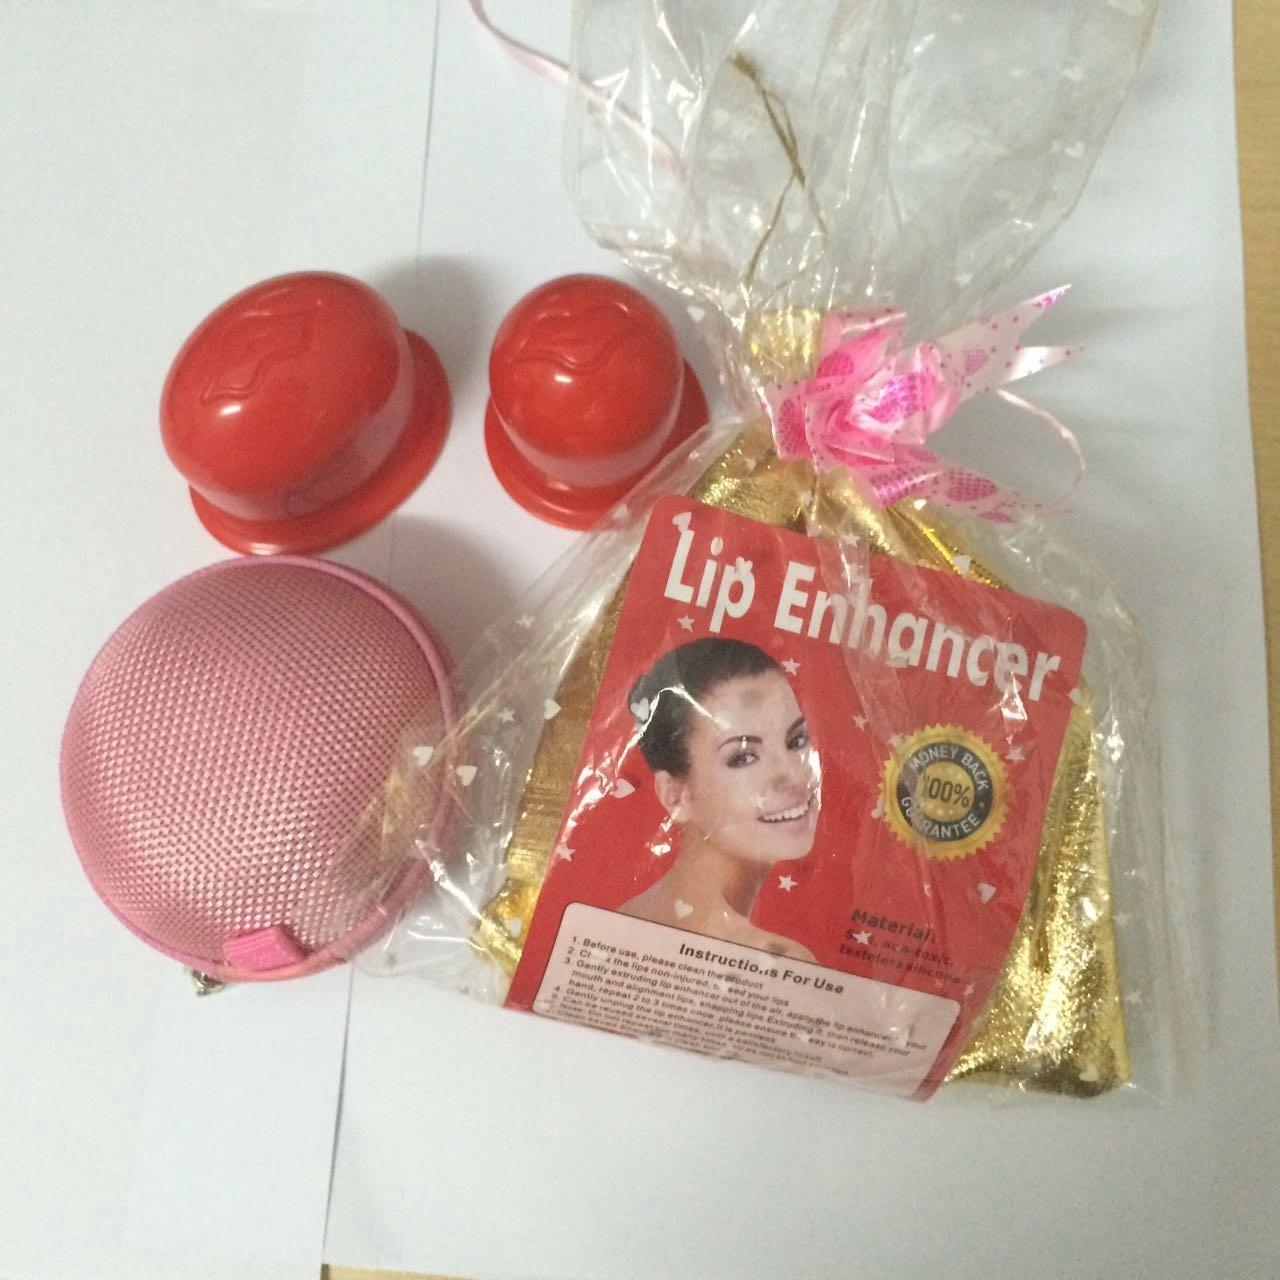 Buy cheap lip enhancers uk , lip enhancer reviews , make lips plump overnight from wholesalers